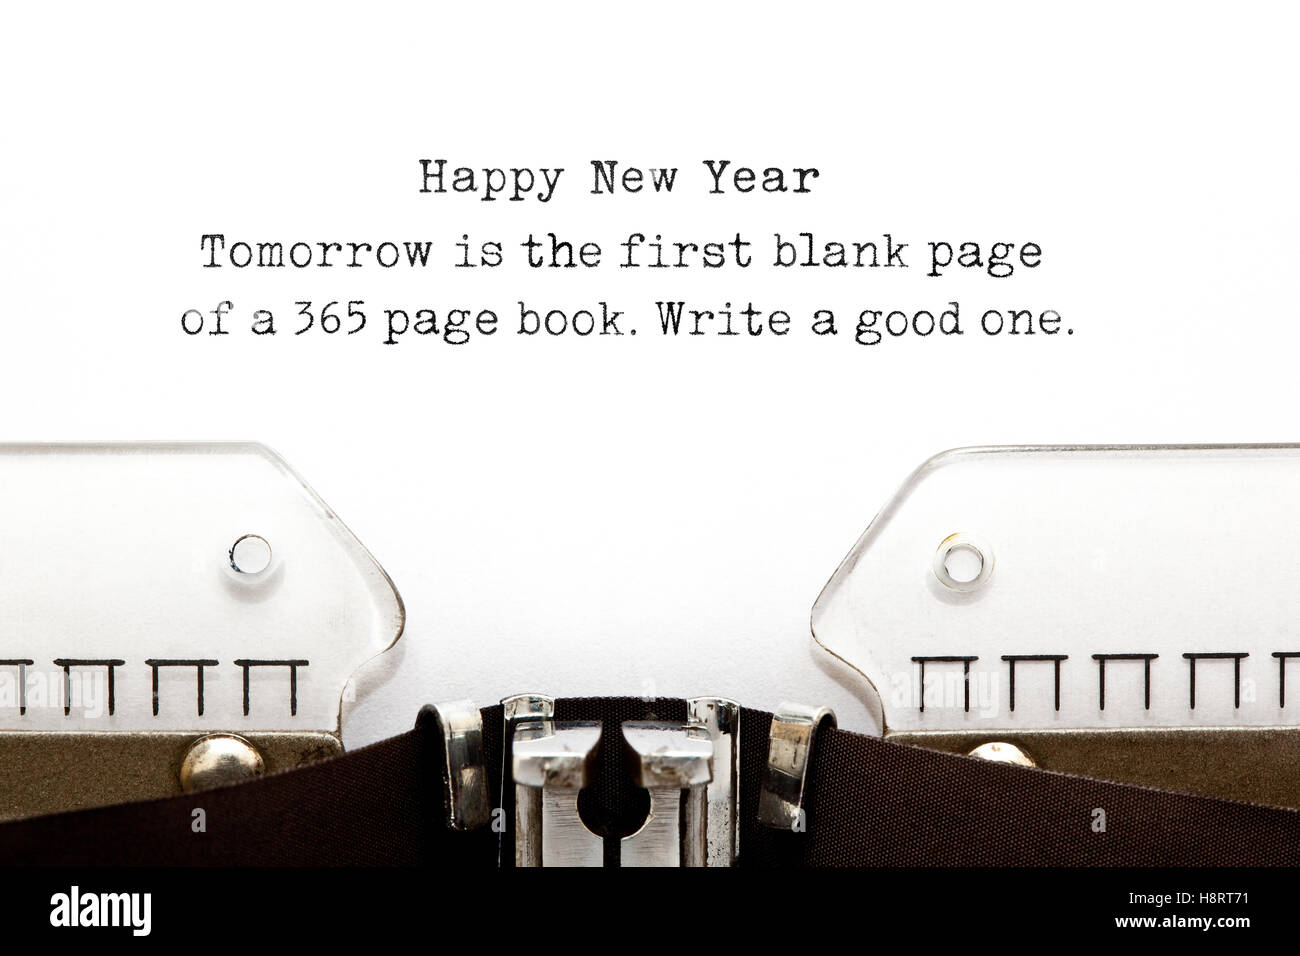 Words Of Wisdom For The New Year Stock Photos & Words Of Wisdom For ...